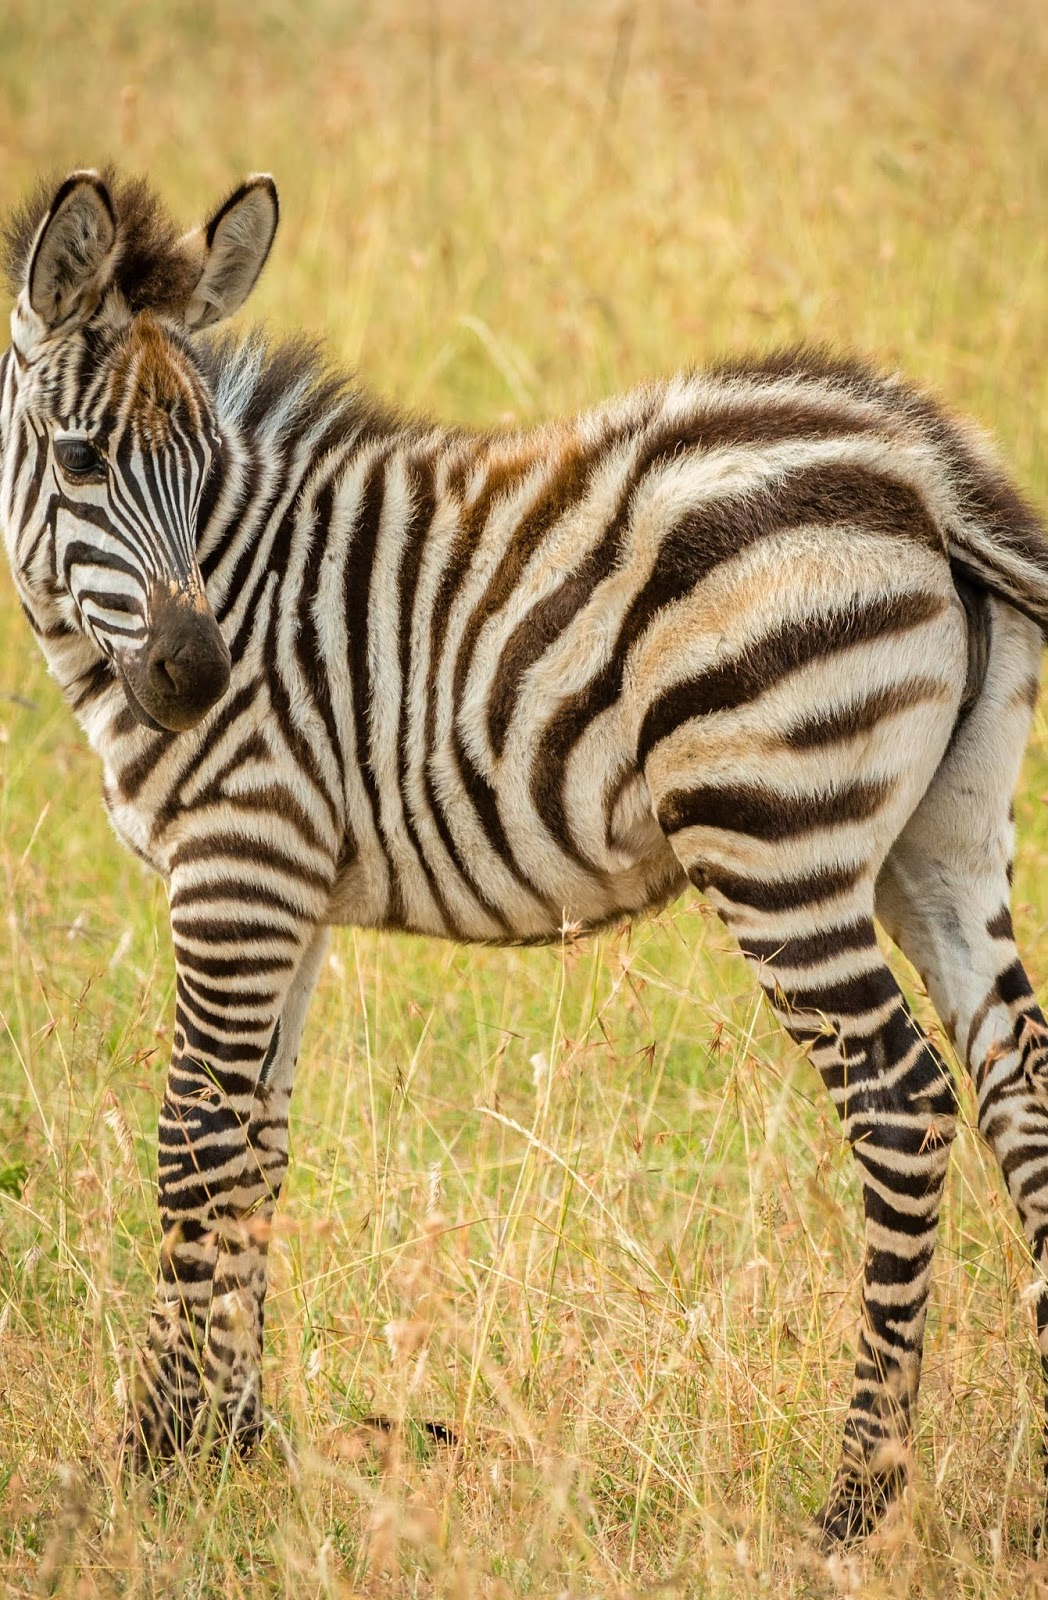 Young zebra - About Wild Animals